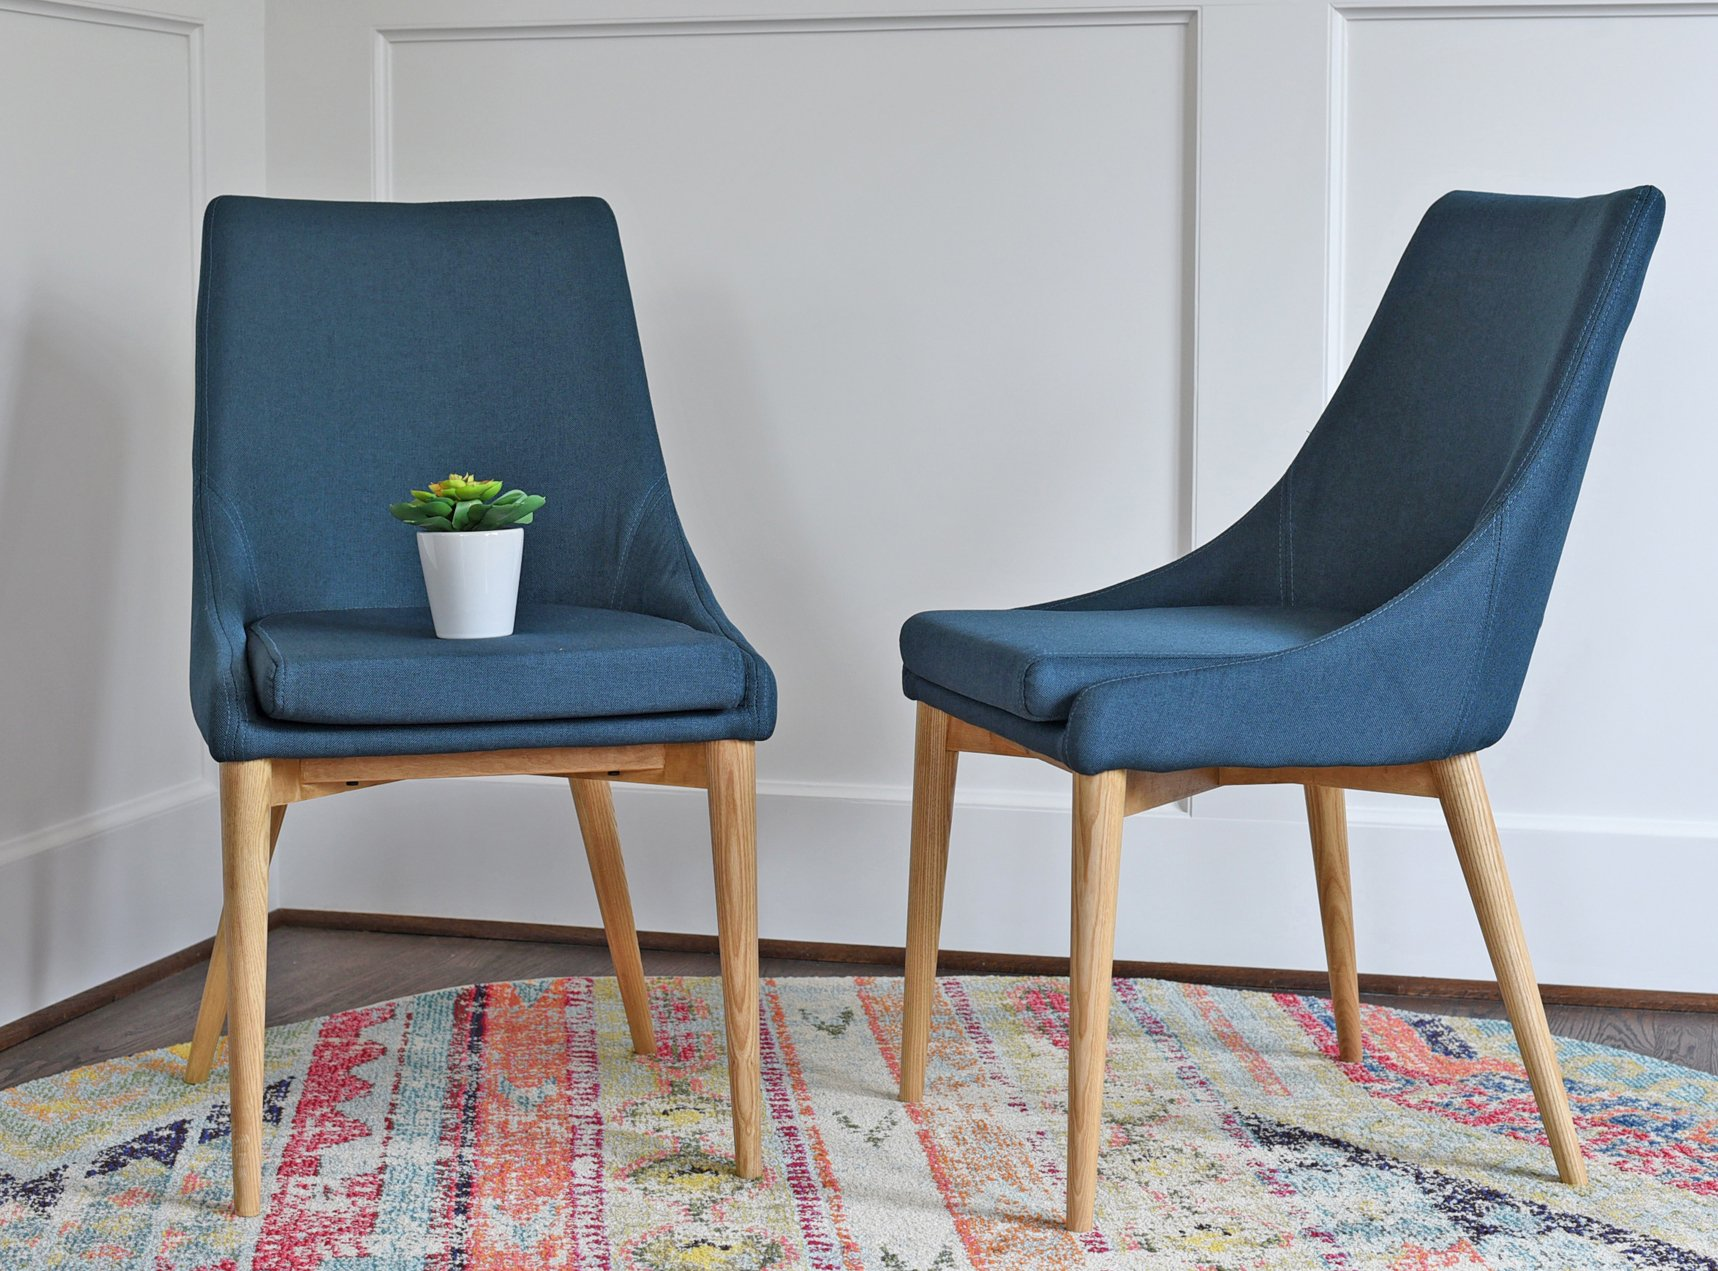 Upholstered Modern Dining Room Chairs - Mid Century Dining Table Chairs - Teal Blue Fabric - Set of 2 - EDLOE FINCH